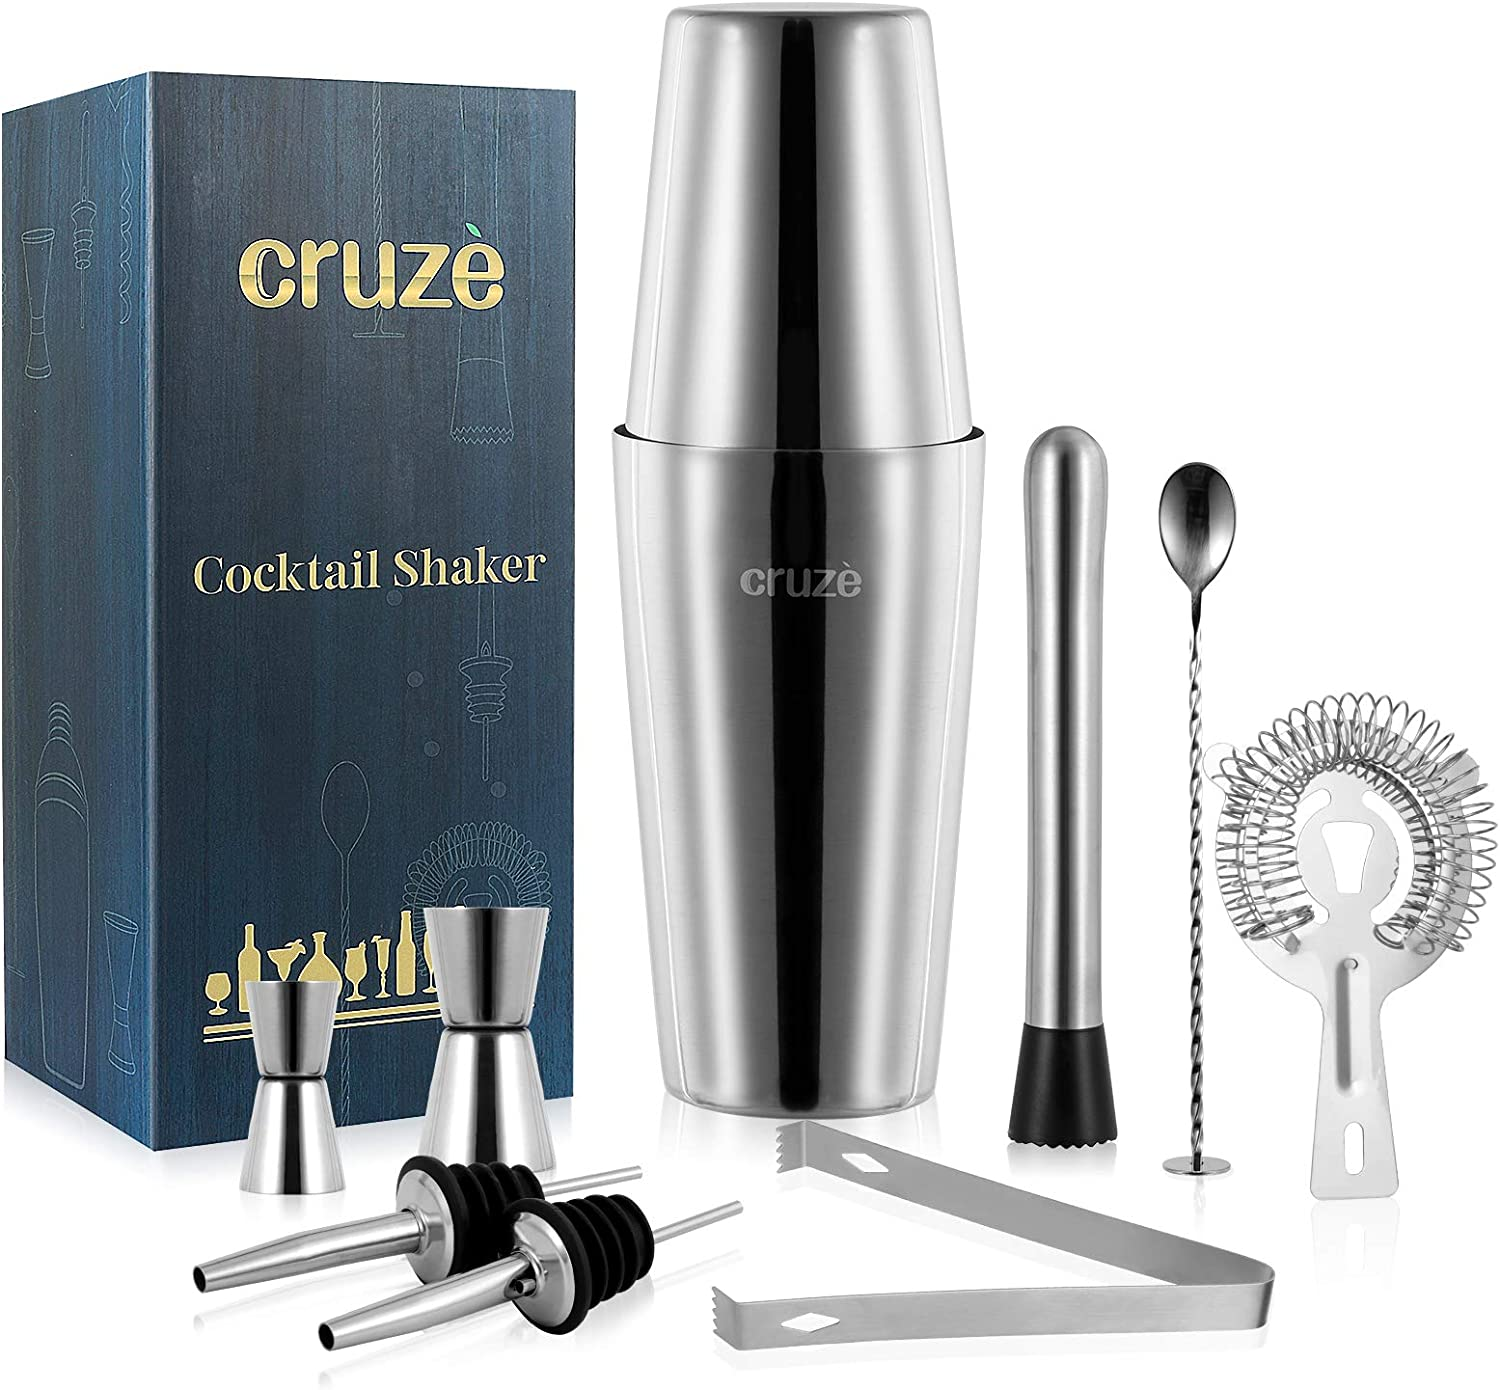 Cocktail Shaker Bar Mixer Set-Professional Bartender Premium Stainless Steel 25oz. Perfect For Homemade Party Drinks with Your Favourite Liquor Mixes. This 9 Piece Kit Has All The Essentials You Need.